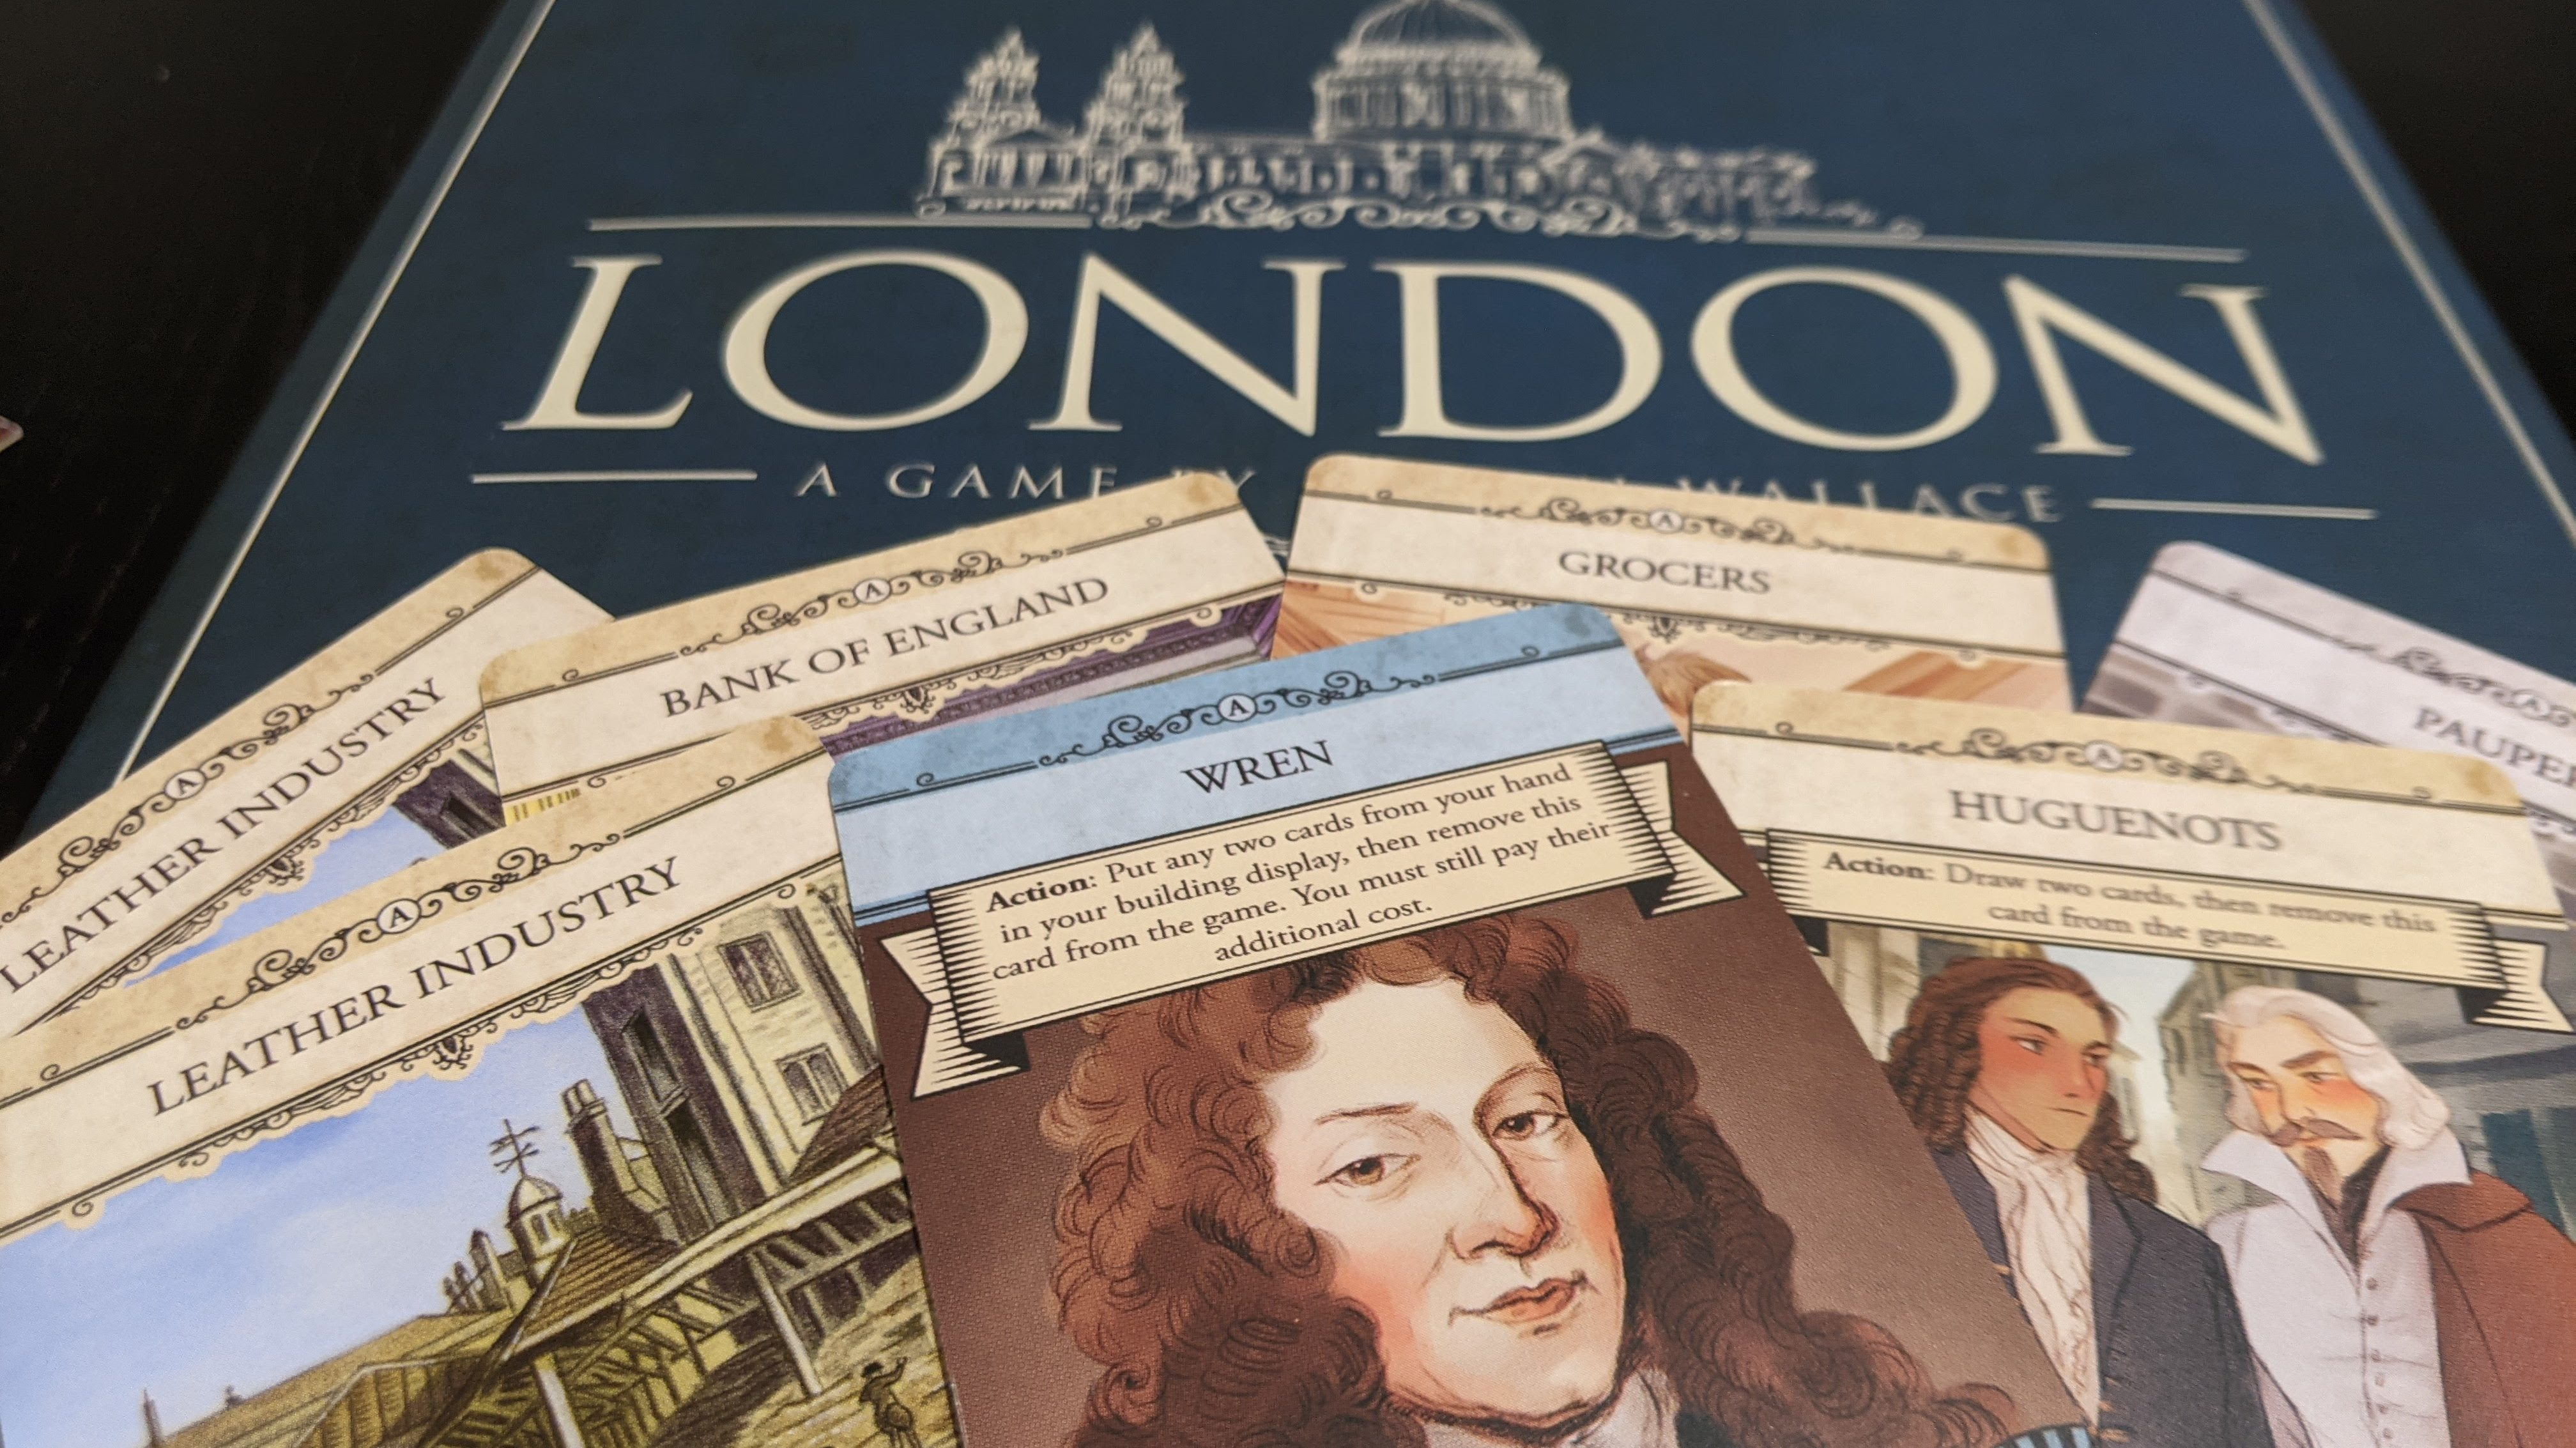 Showing some of the card art from London in front of  the box.